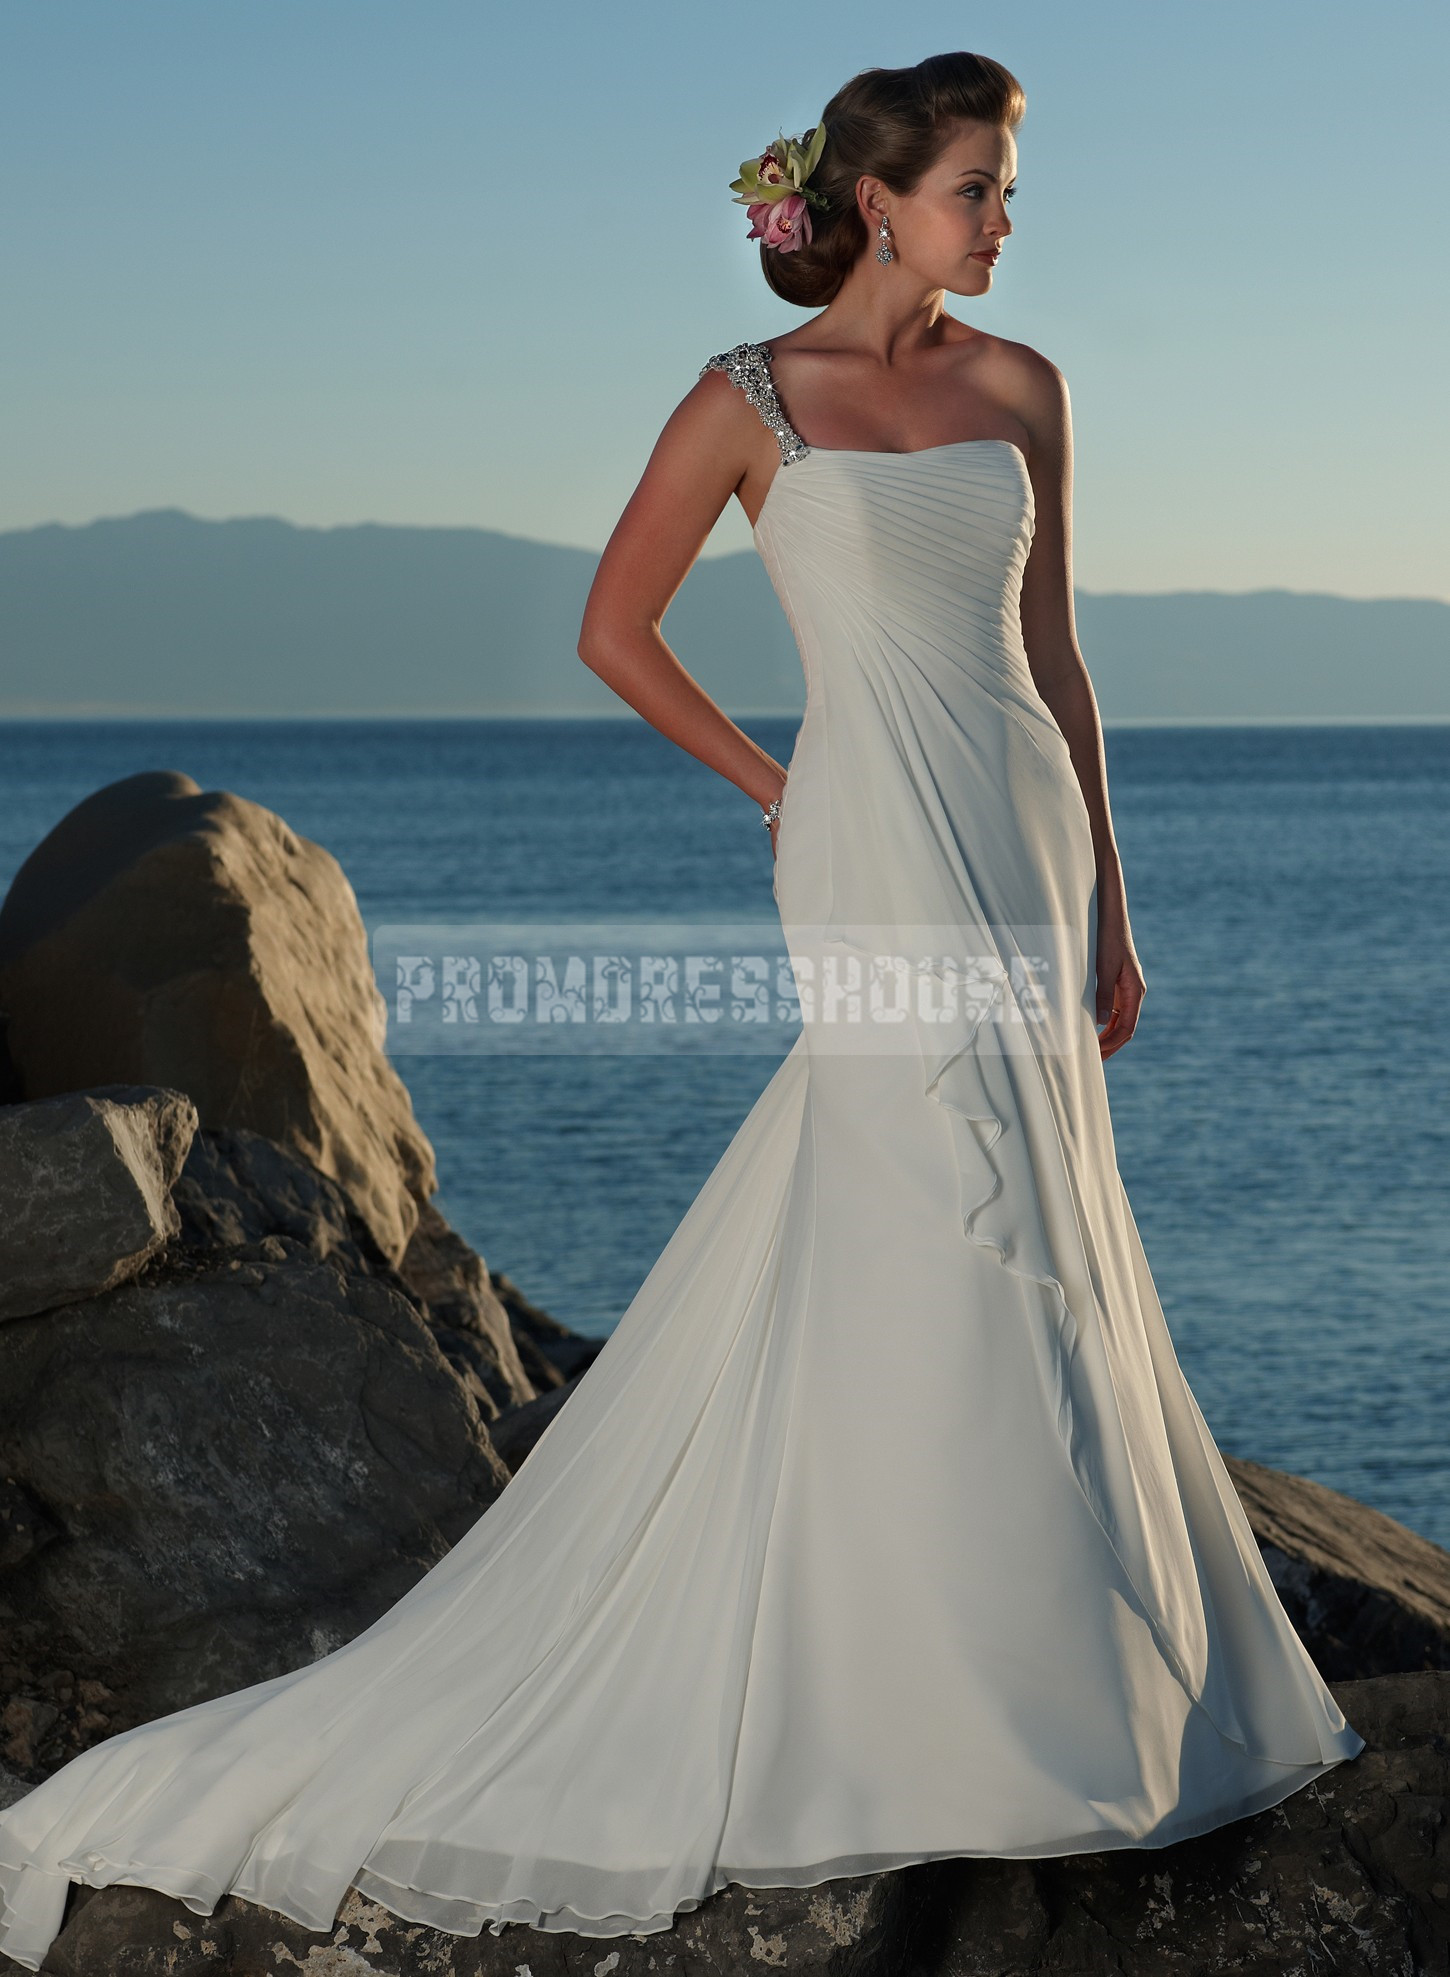 Sleeveless Sheath Chiffon One Shoulder Grecian Wedding Dress - Promdresshouse.com